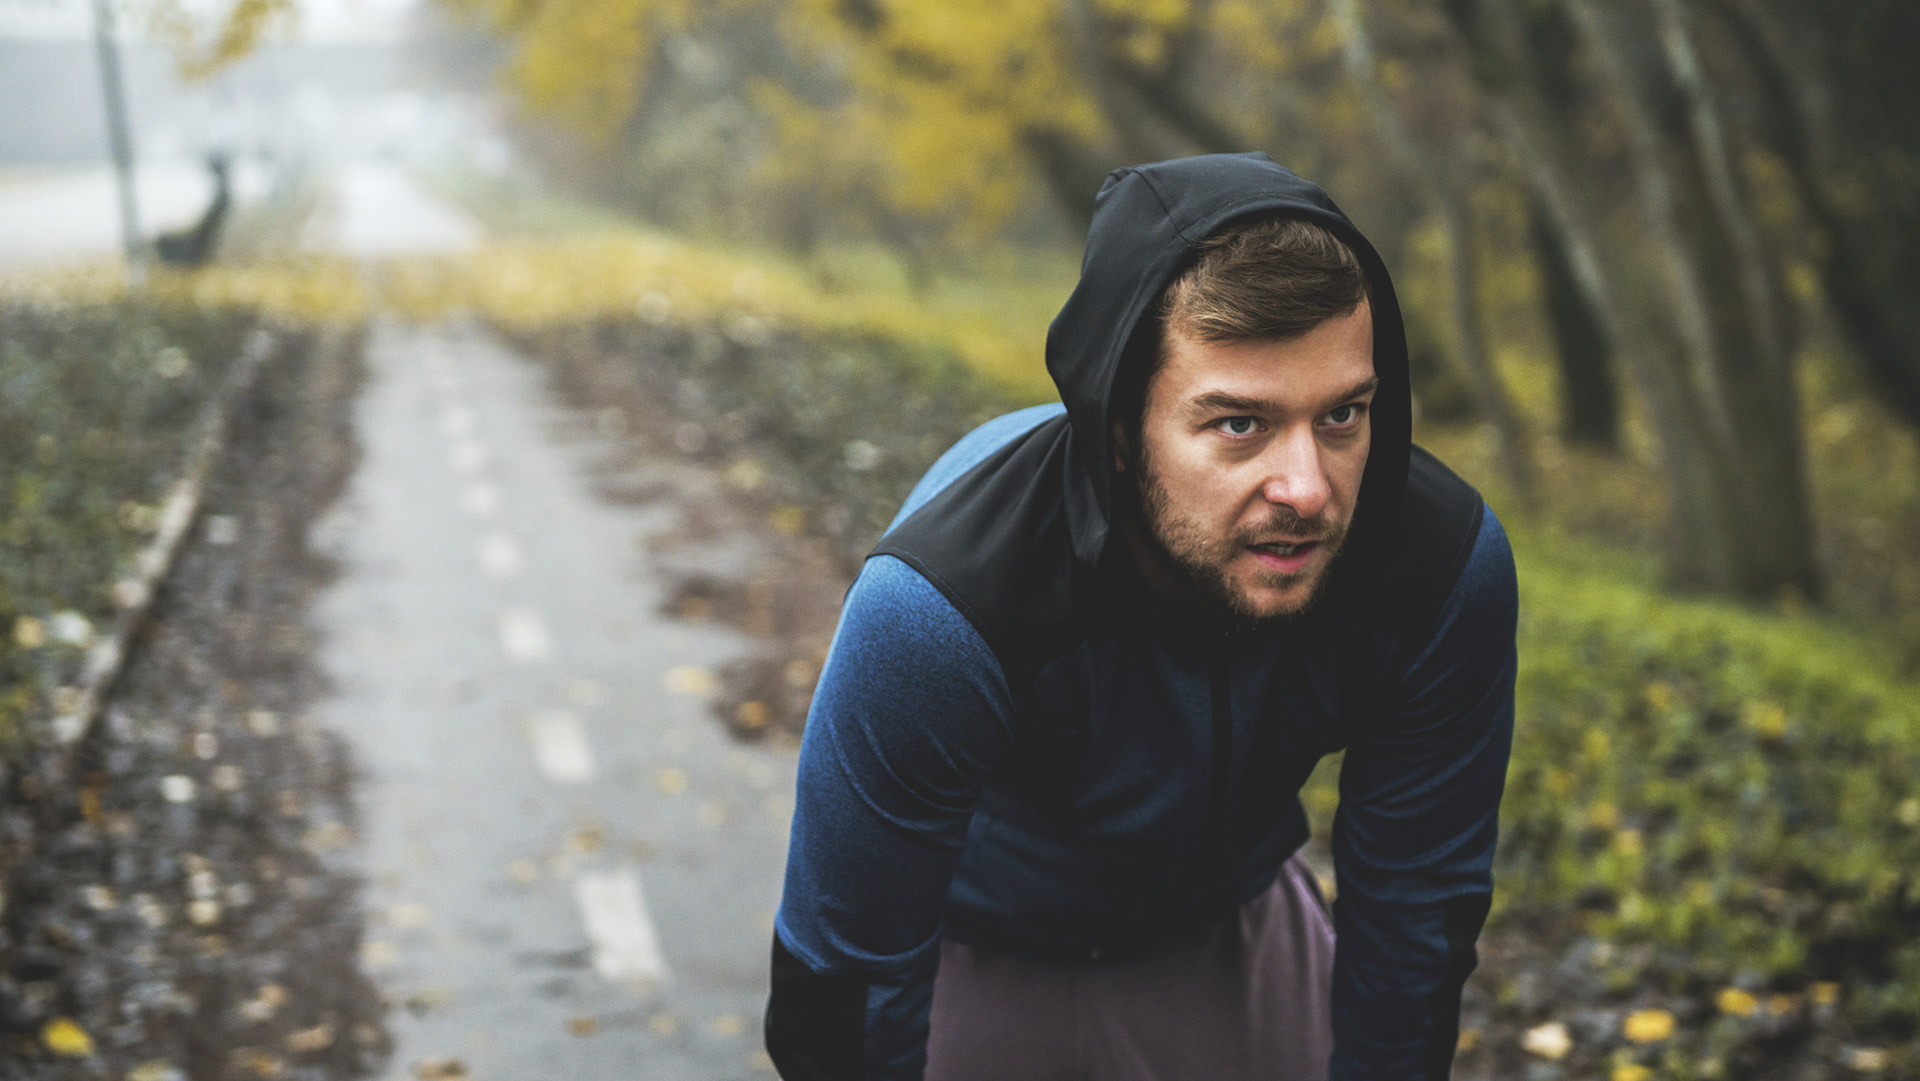 Shot of a man taking a break from running.